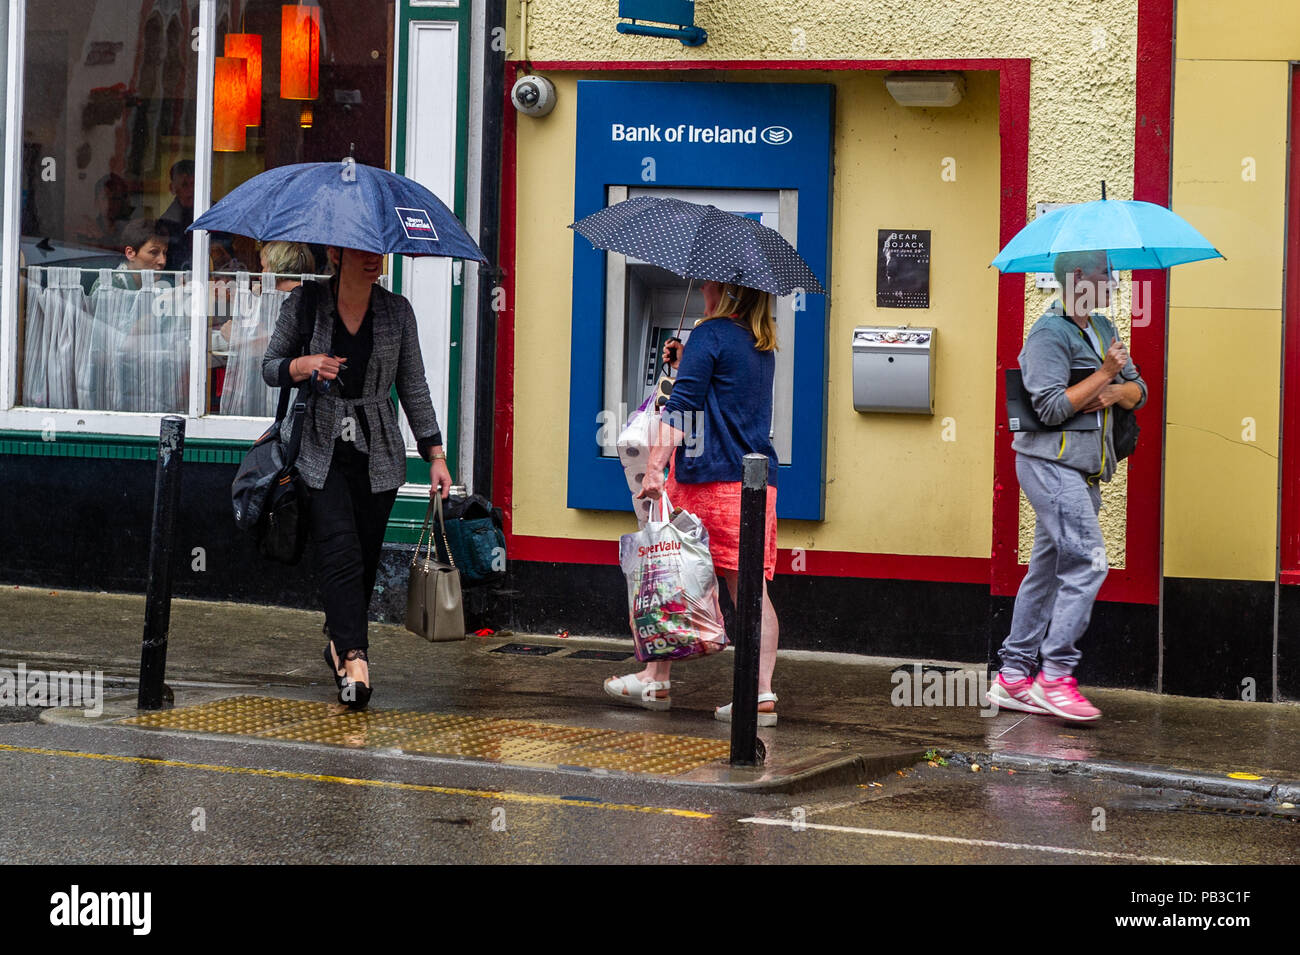 skibbereen-west-cork-ireland-26th-july-2018-after-weeks-of-an-irish-heatwave-which-brought-blisteringly-hot-temperatures-rain-finally-hit-the-west-cork-region-of-ireland-today-the-rain-is-expected-to-last-until-at-least-next-week-credit-andy-gibsonalamy-live-news-PB3C1F.jpg